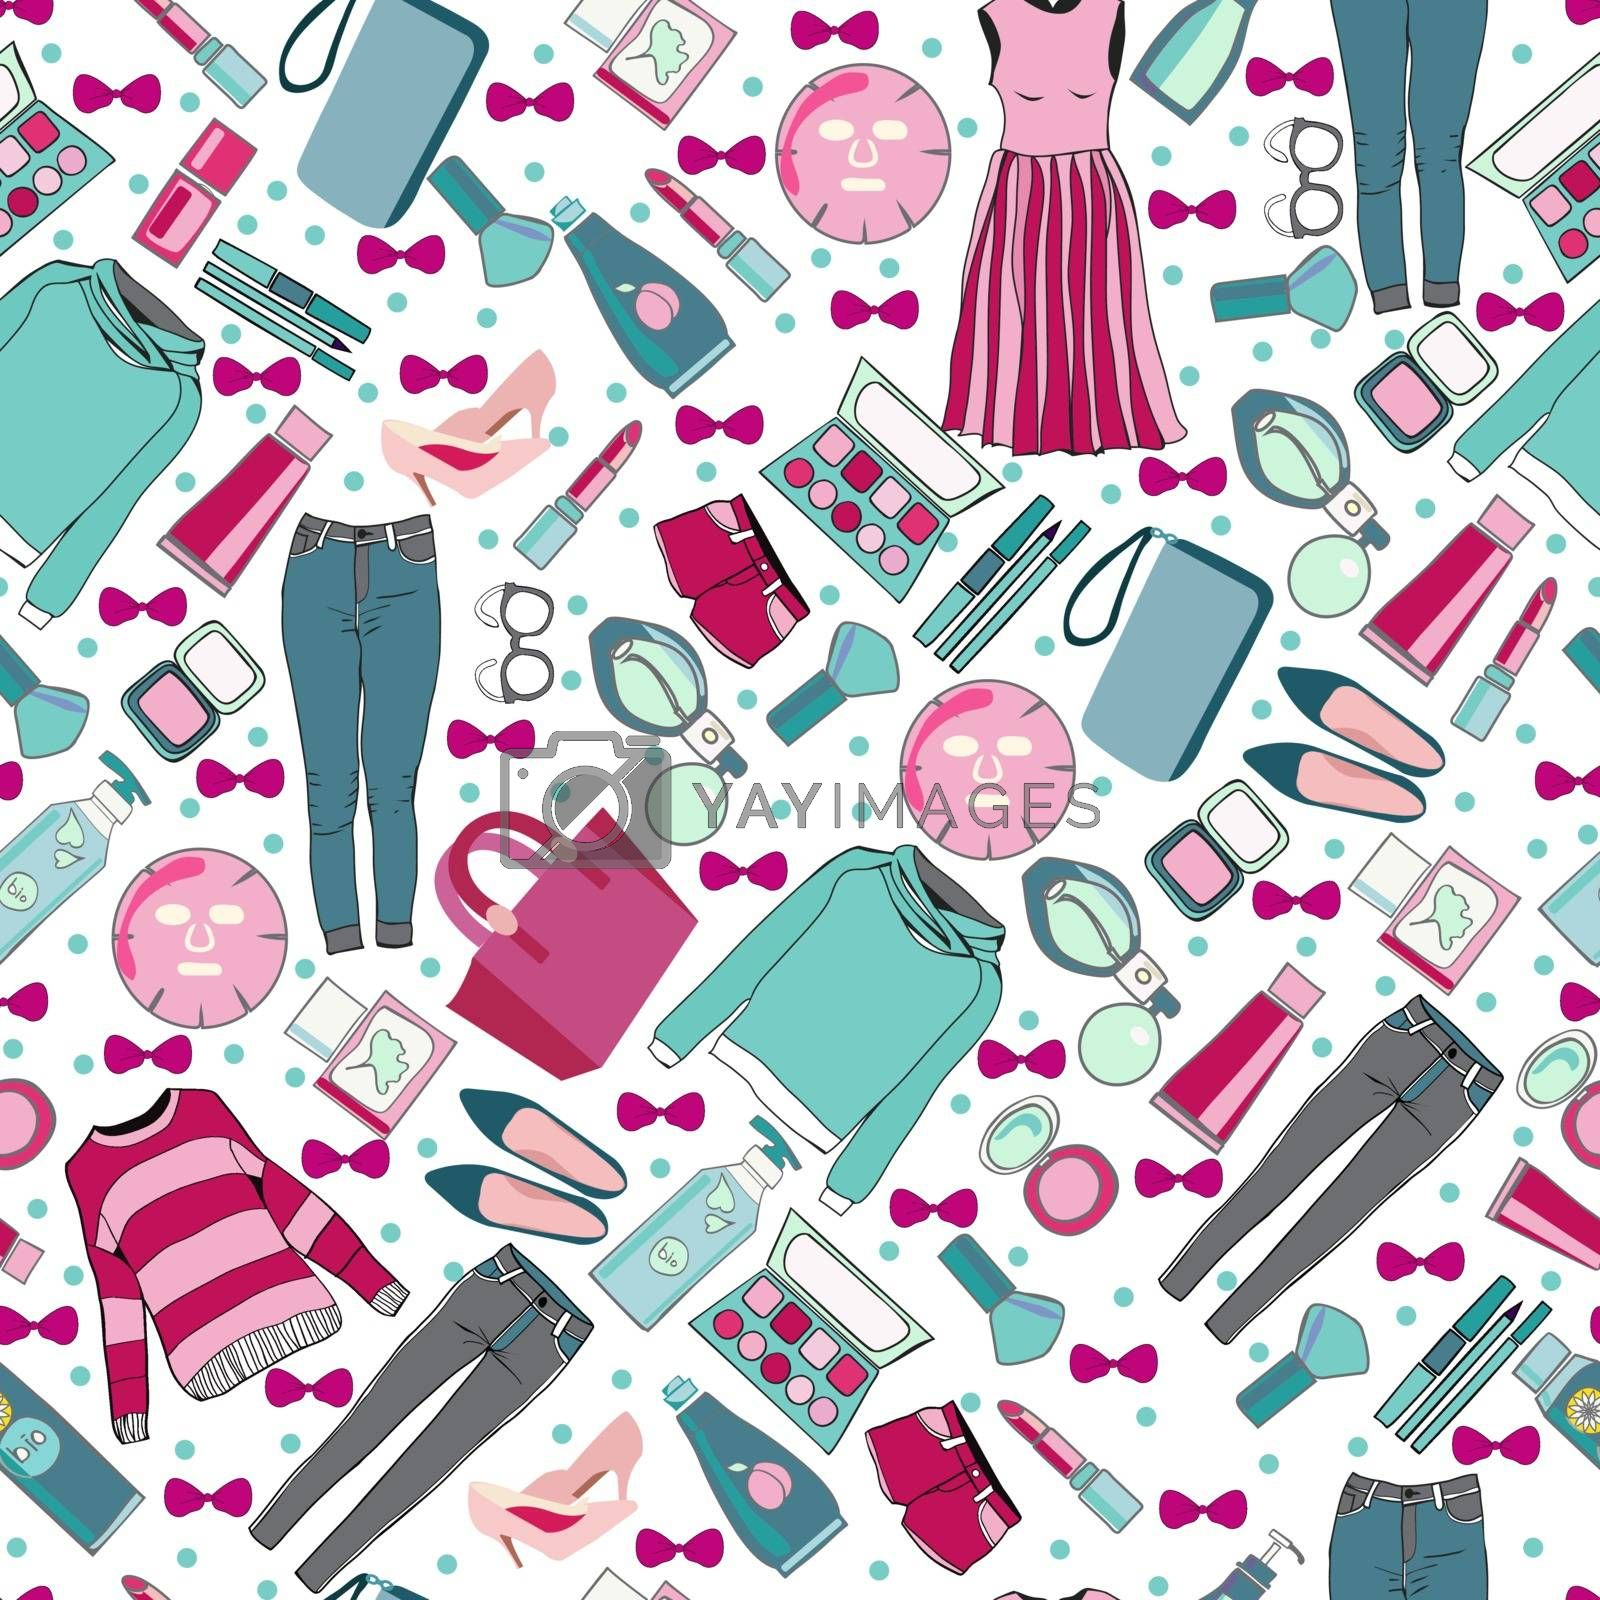 Vector of hand drawn fashion collection of clothes and accessories pattern illustration. Stylish women accessories illustration for card or poster print on clothes.